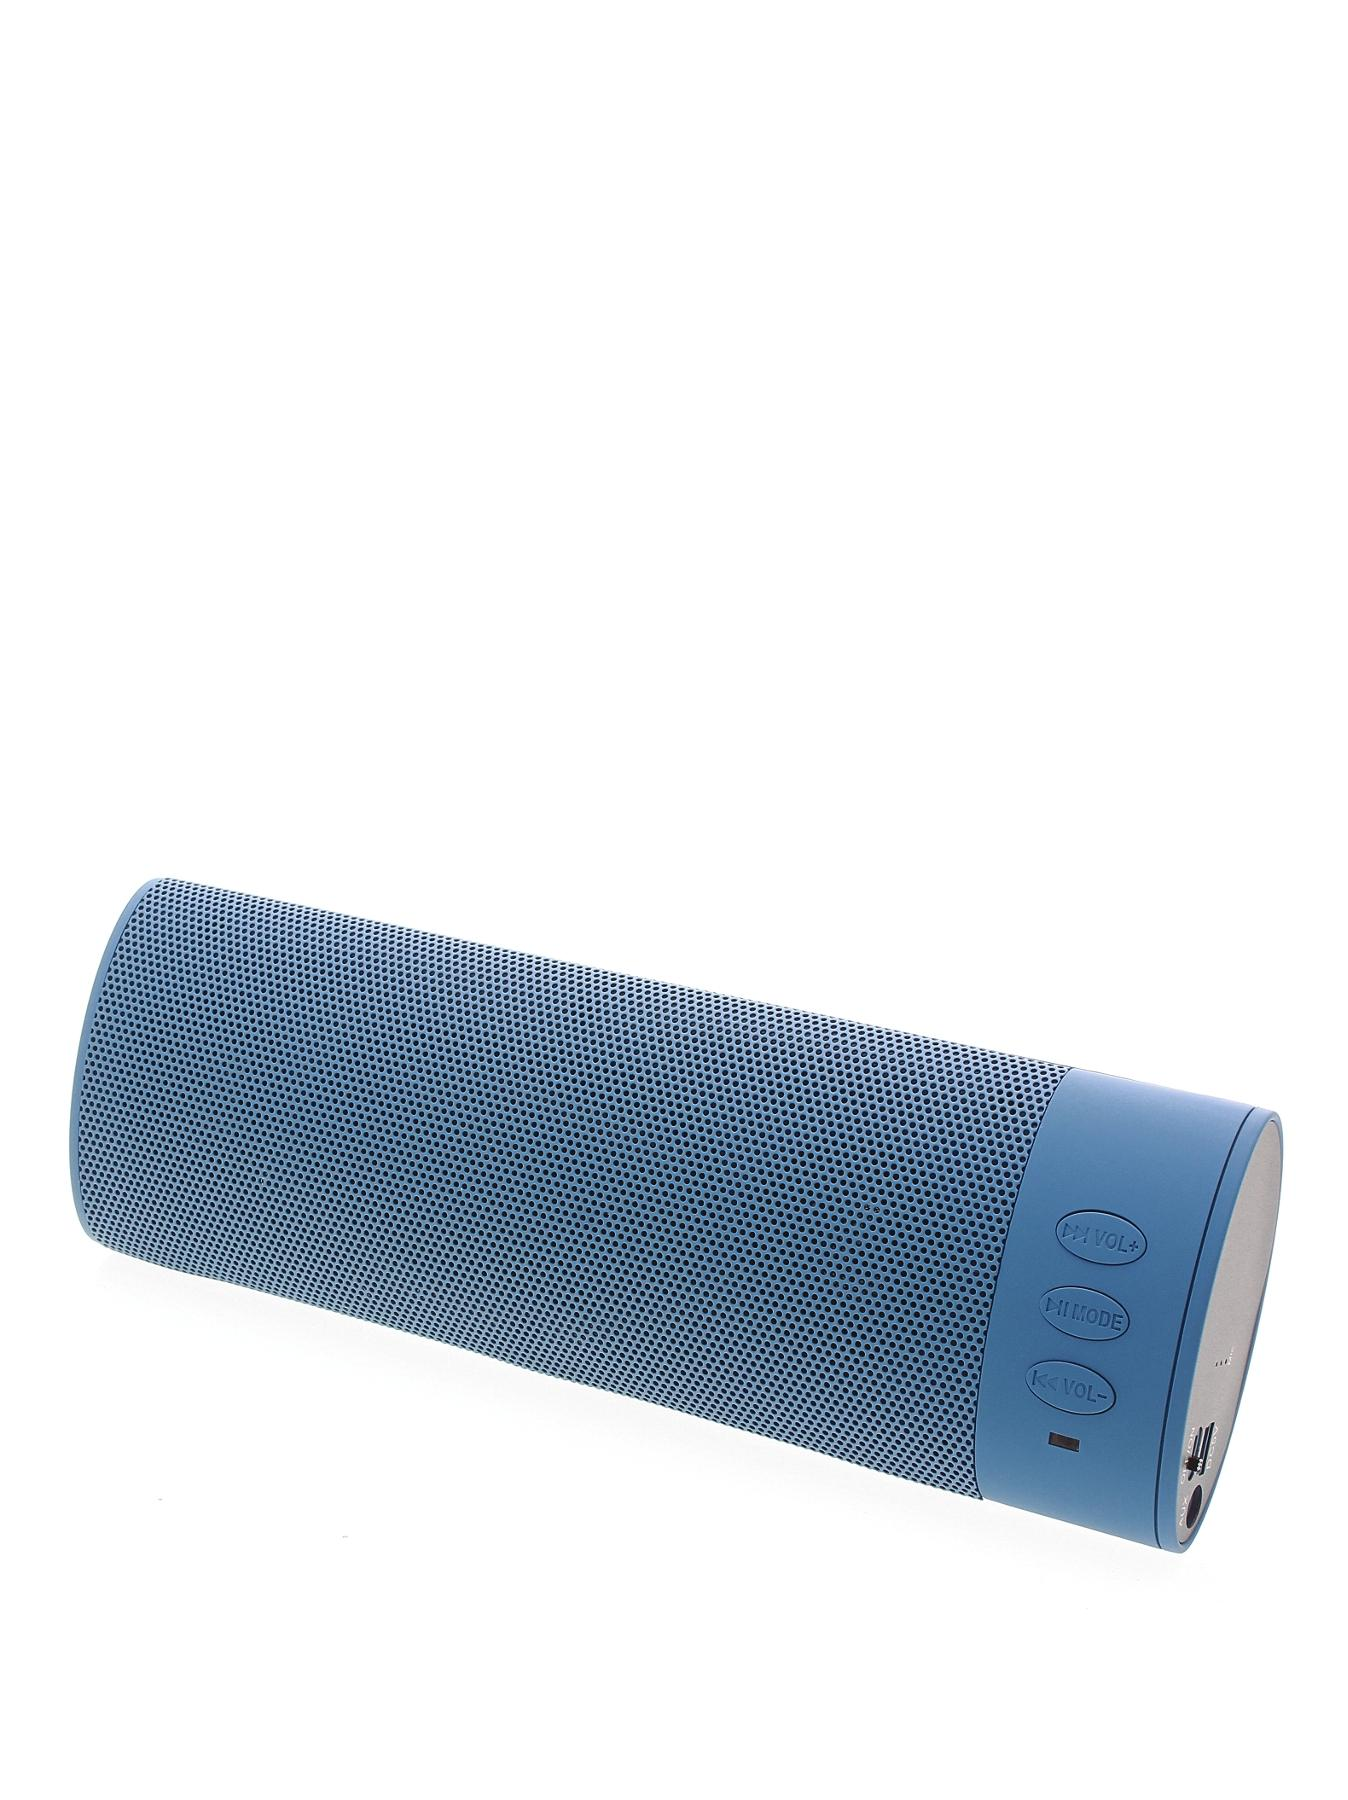 BoomBar Portable Rechargeable Bluetooth Wireless Speaker - Blue